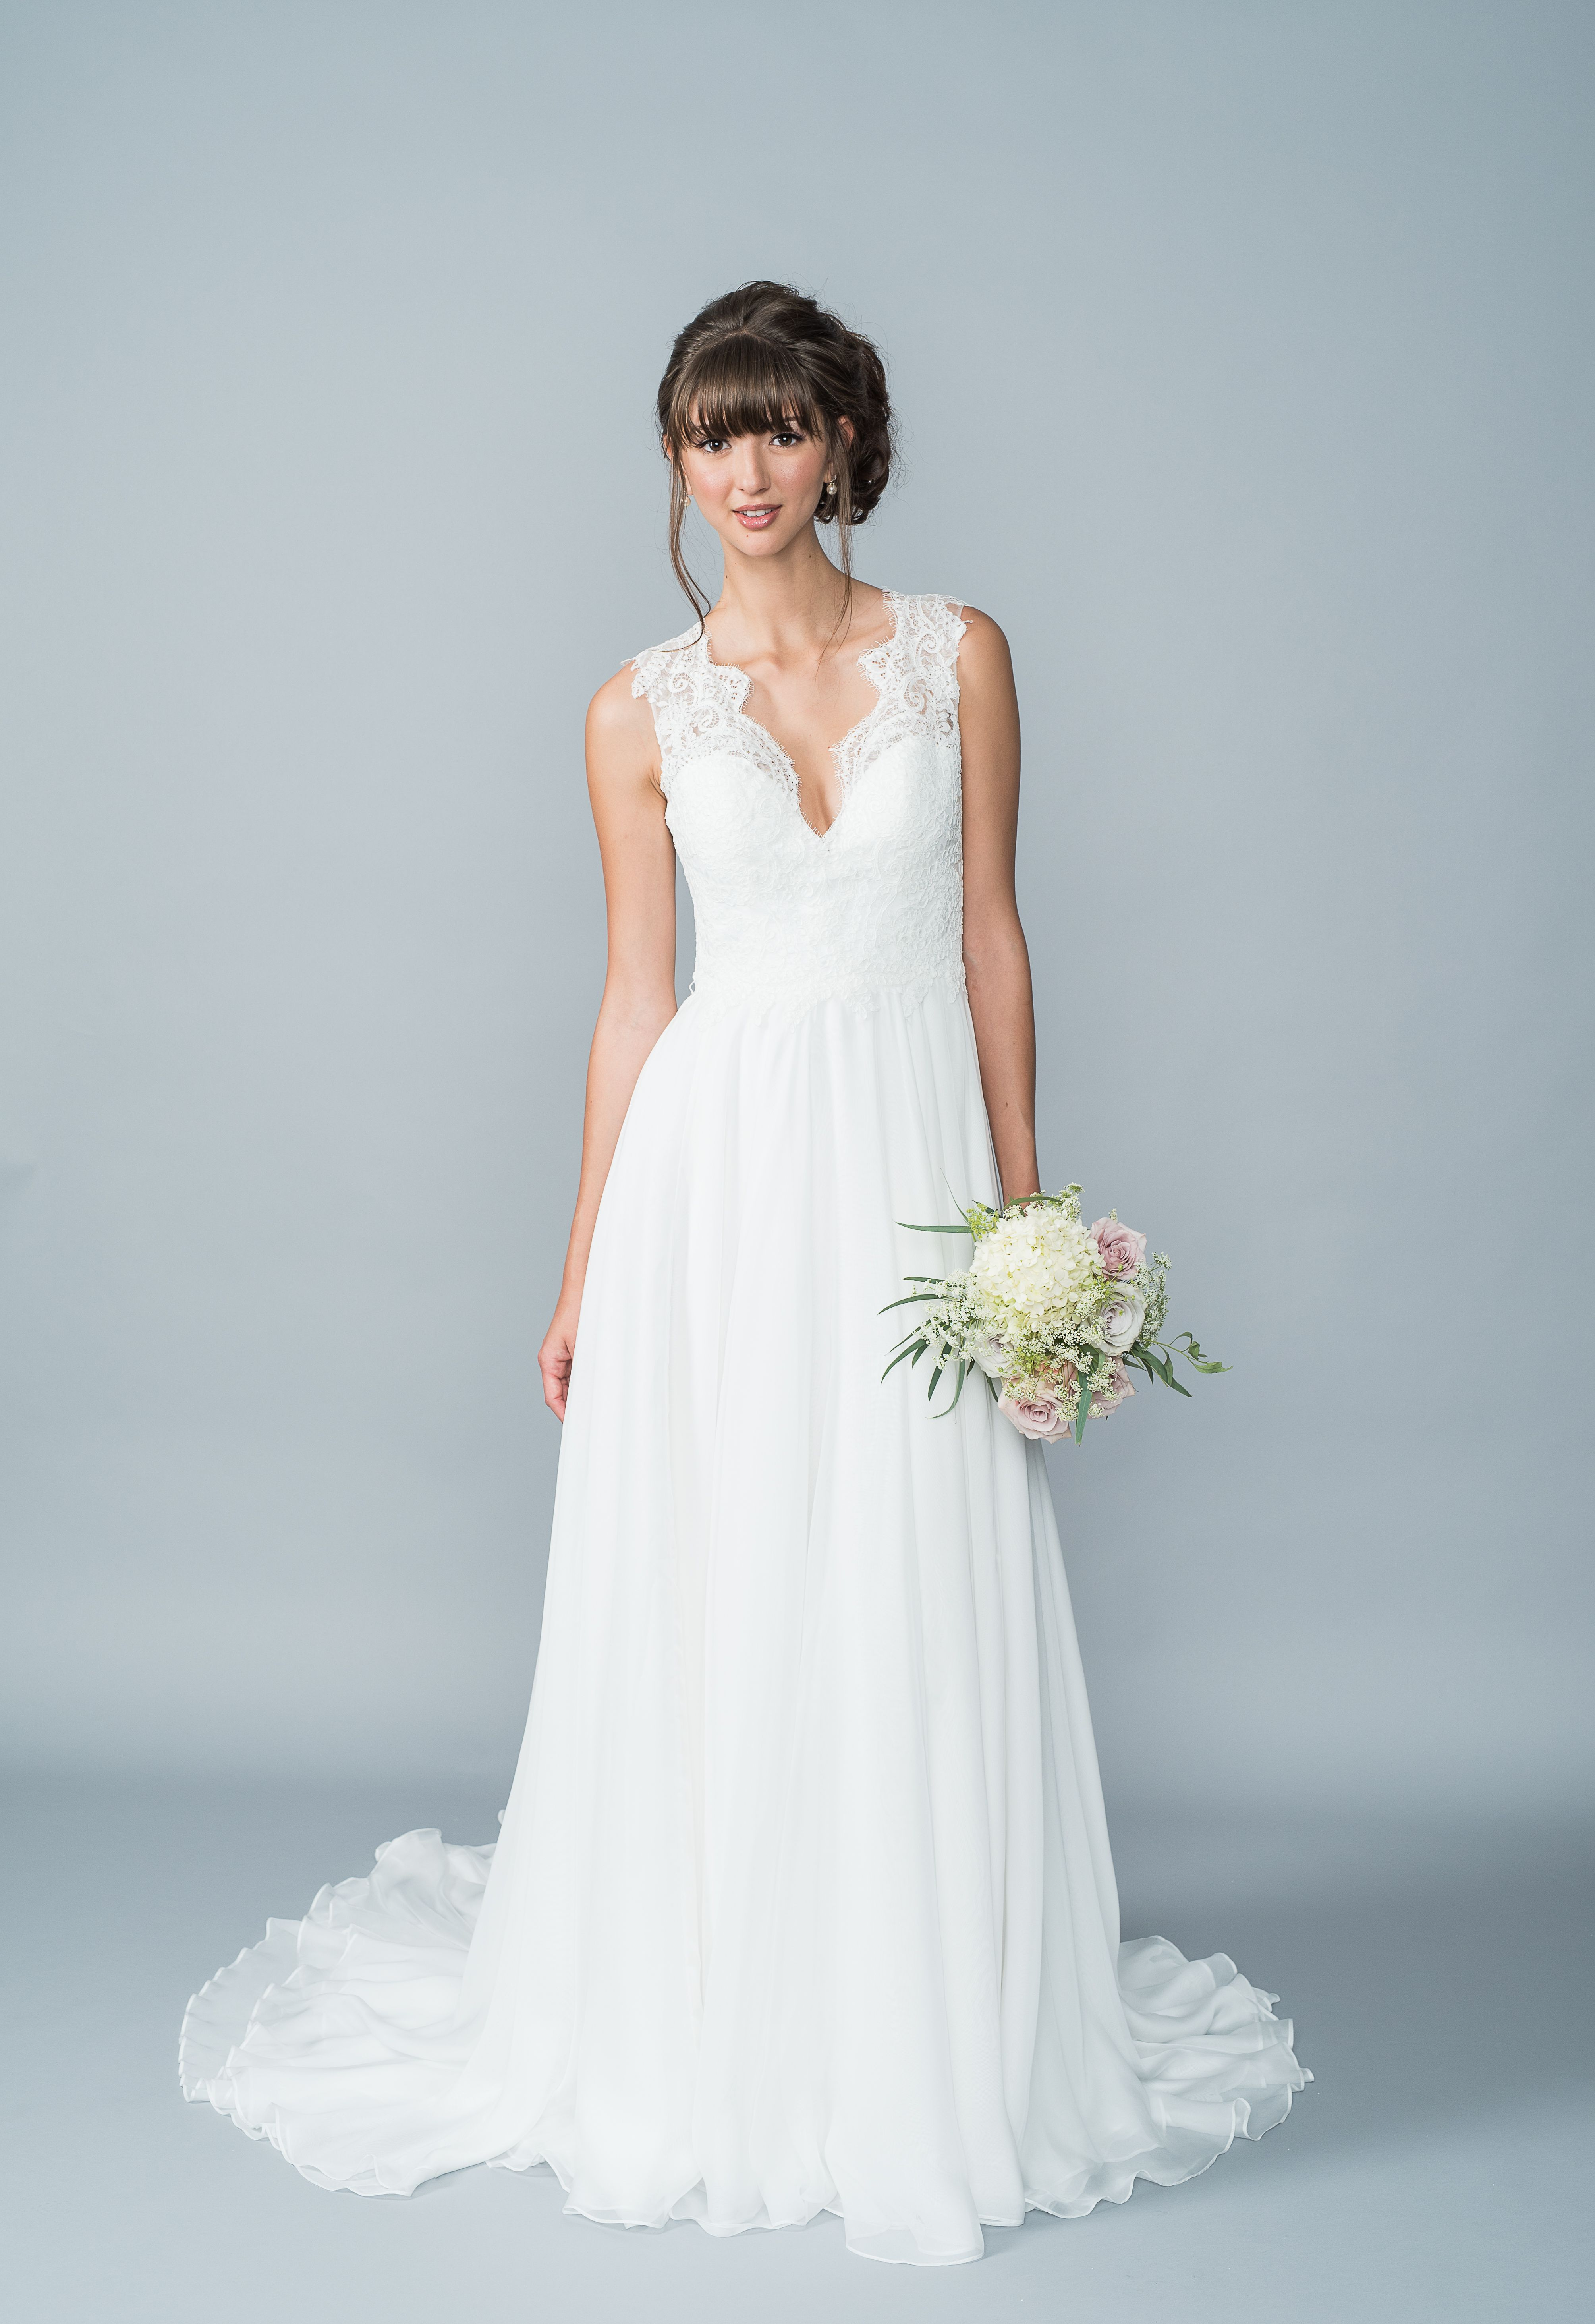 Lis Simon Hayden Town And Country Bridal Boutique St Louis Mo Www Townandcountrybride With Images White Bridal Dresses Wedding Dresses Wedding Dress Alterations